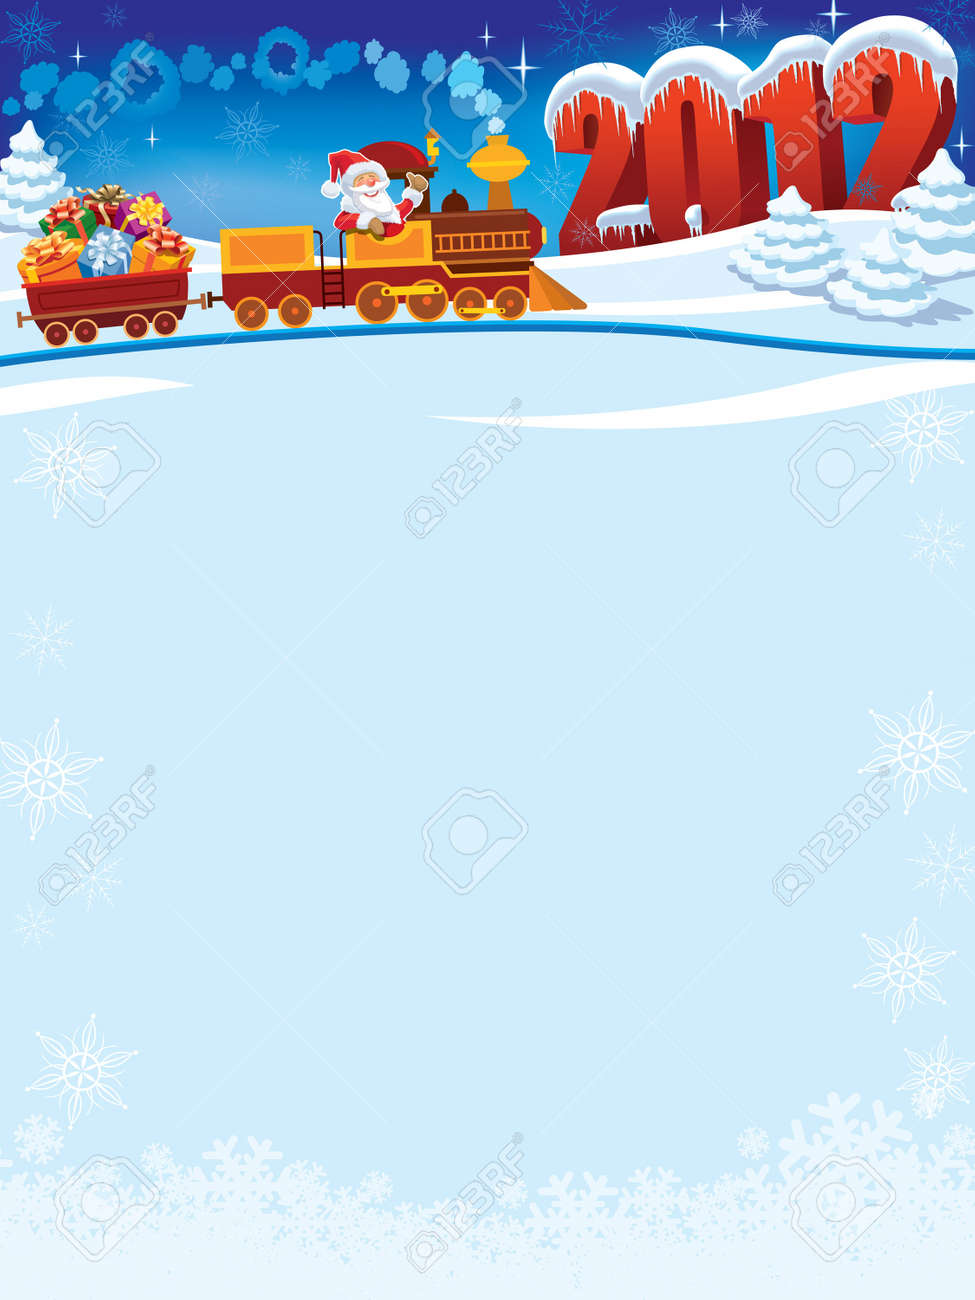 Santa Claus in a toy train with gifts, New Year in the background. Stock Vector - 11124655